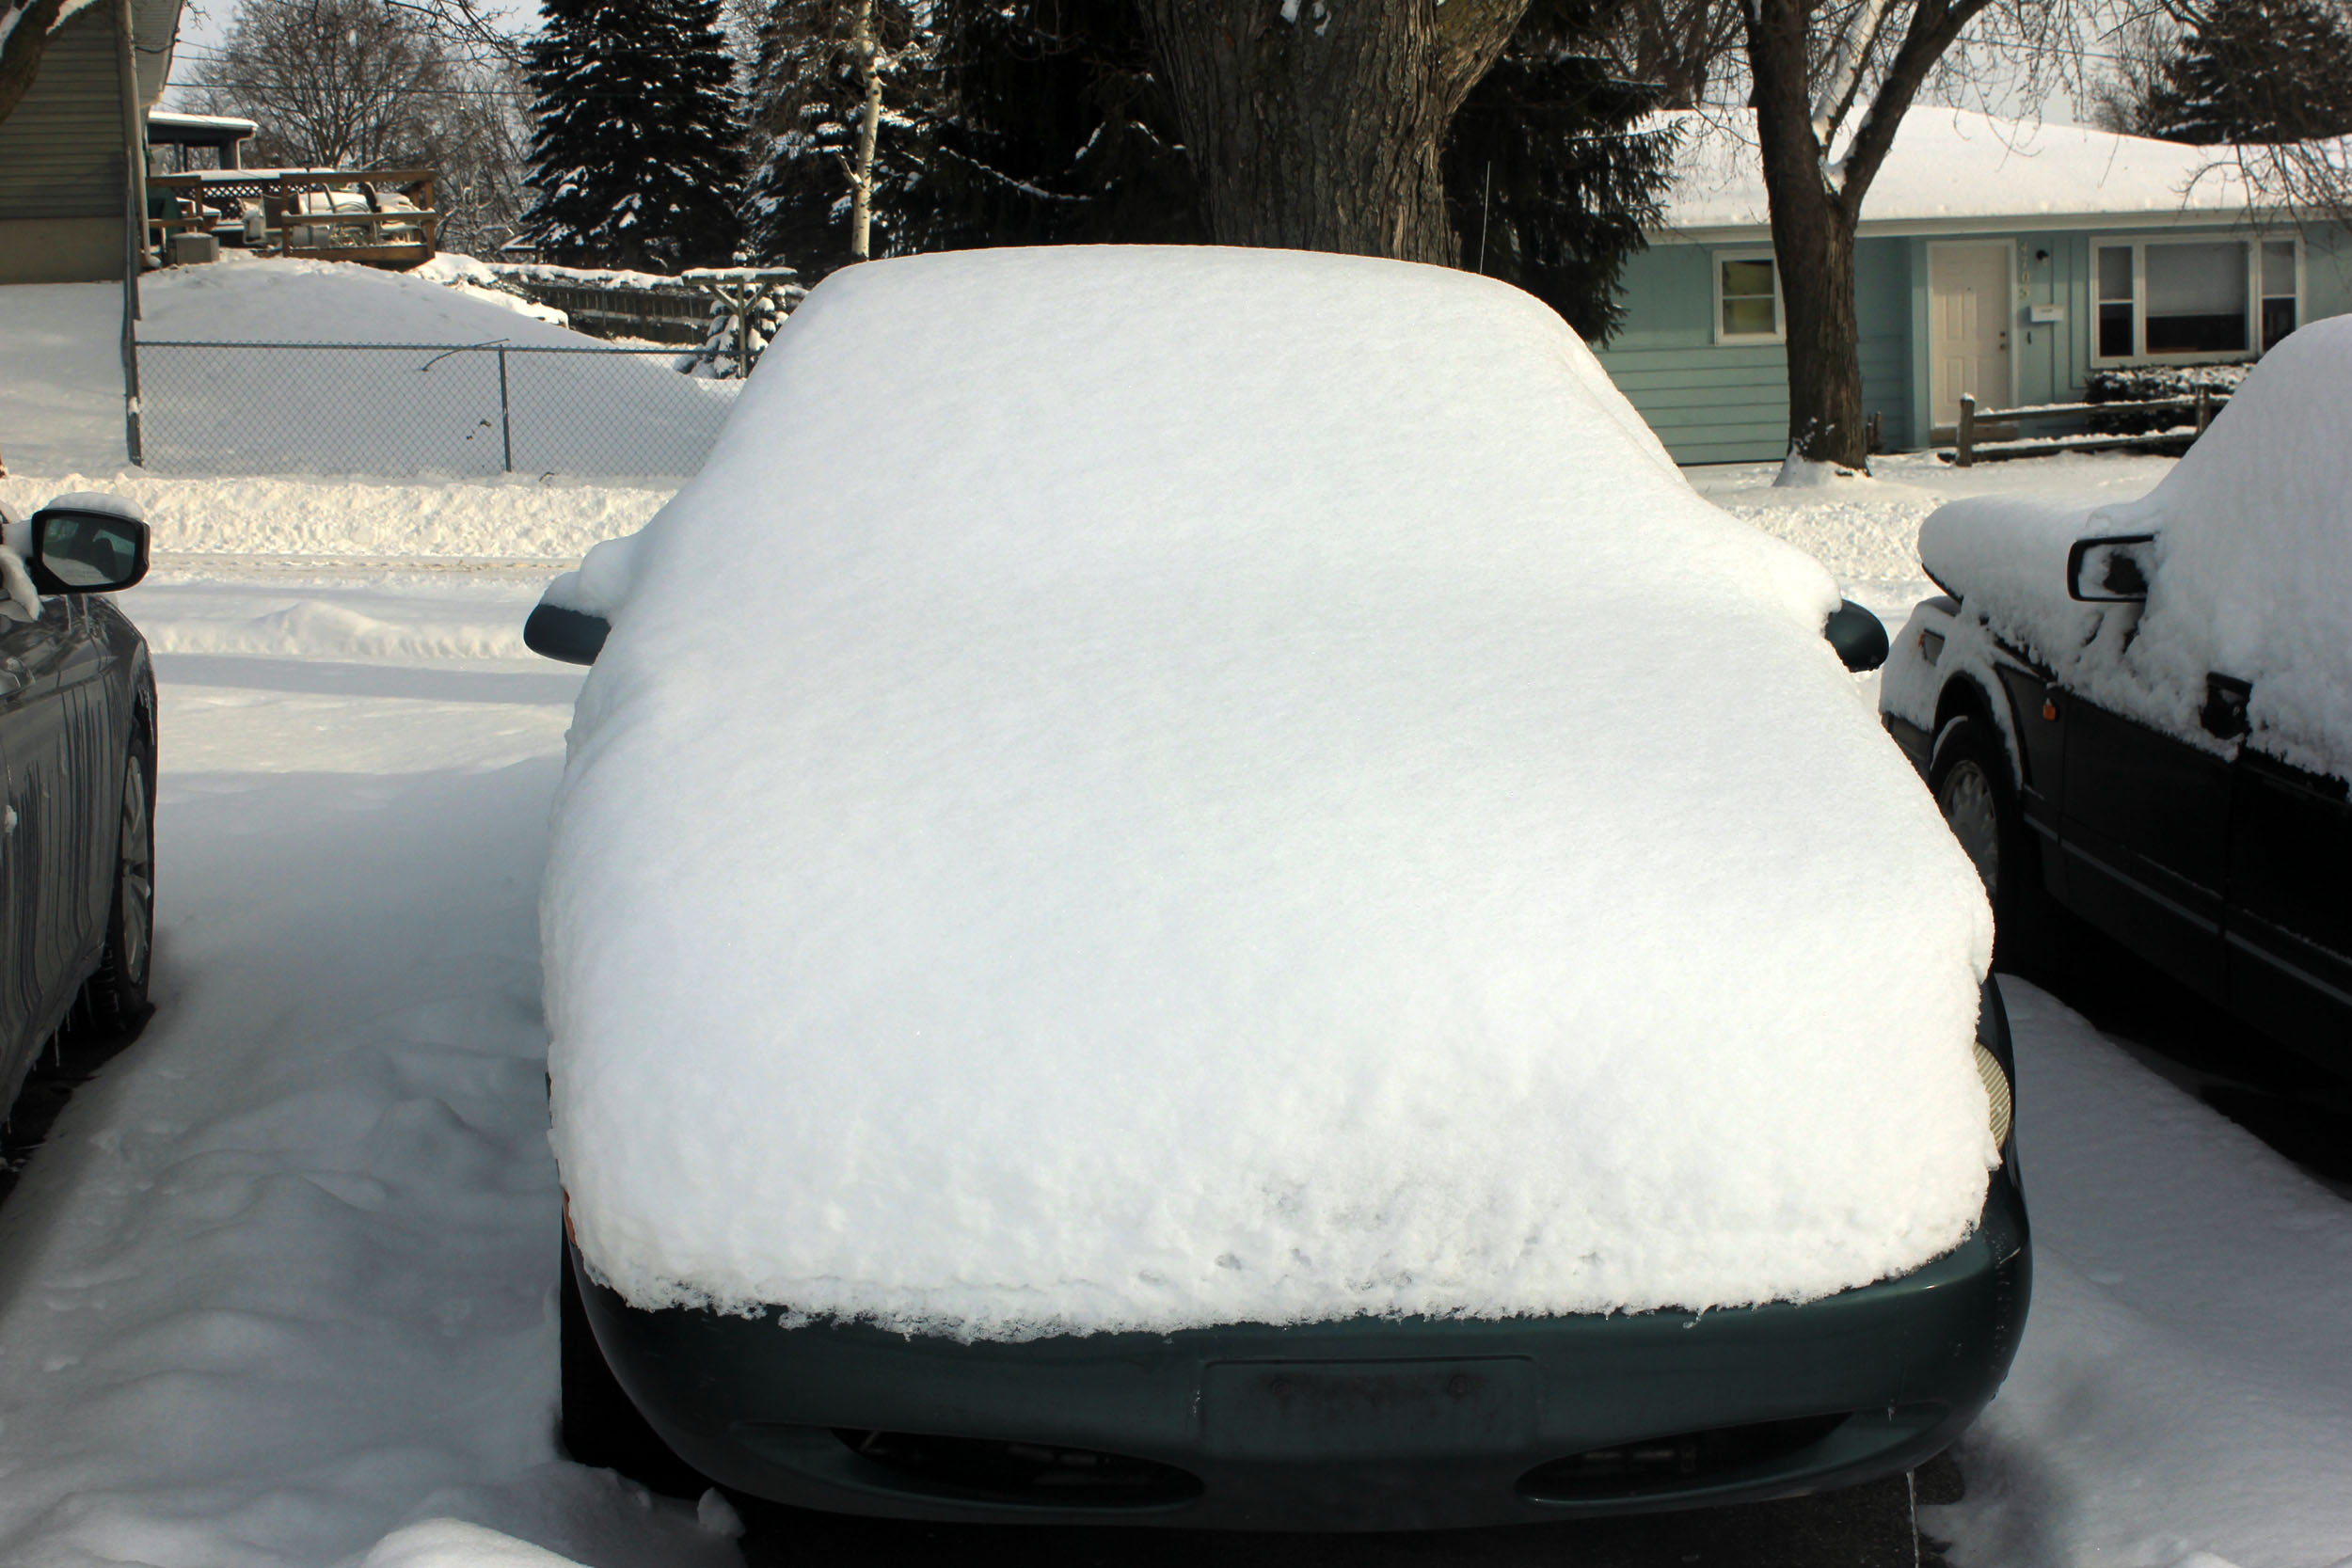 File:Gfp-snow-covered-car.jpg - Wikimedia Commons